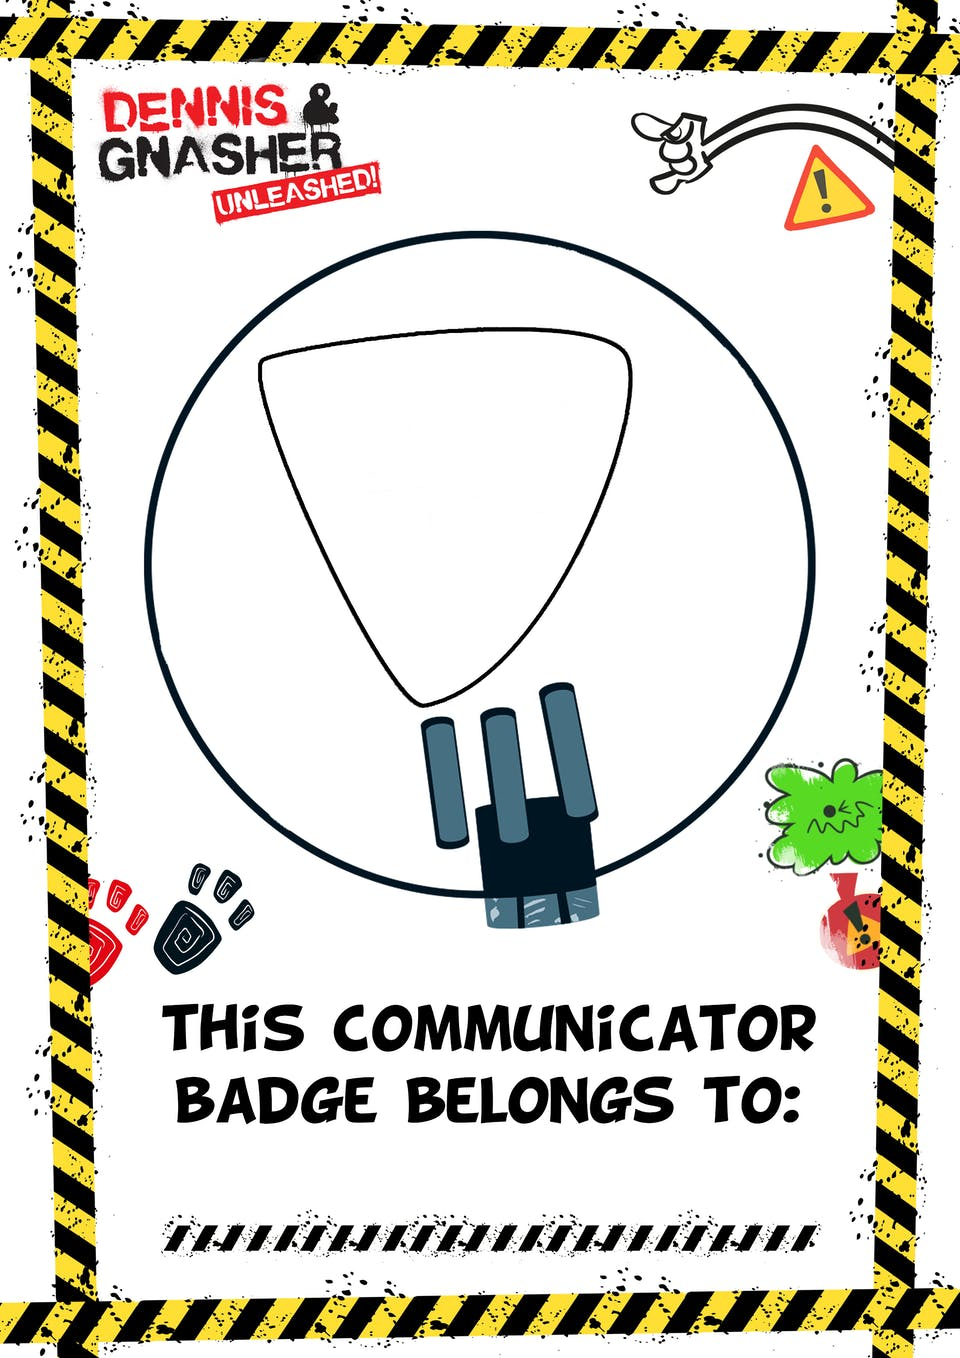 This communicator badge belongs to...